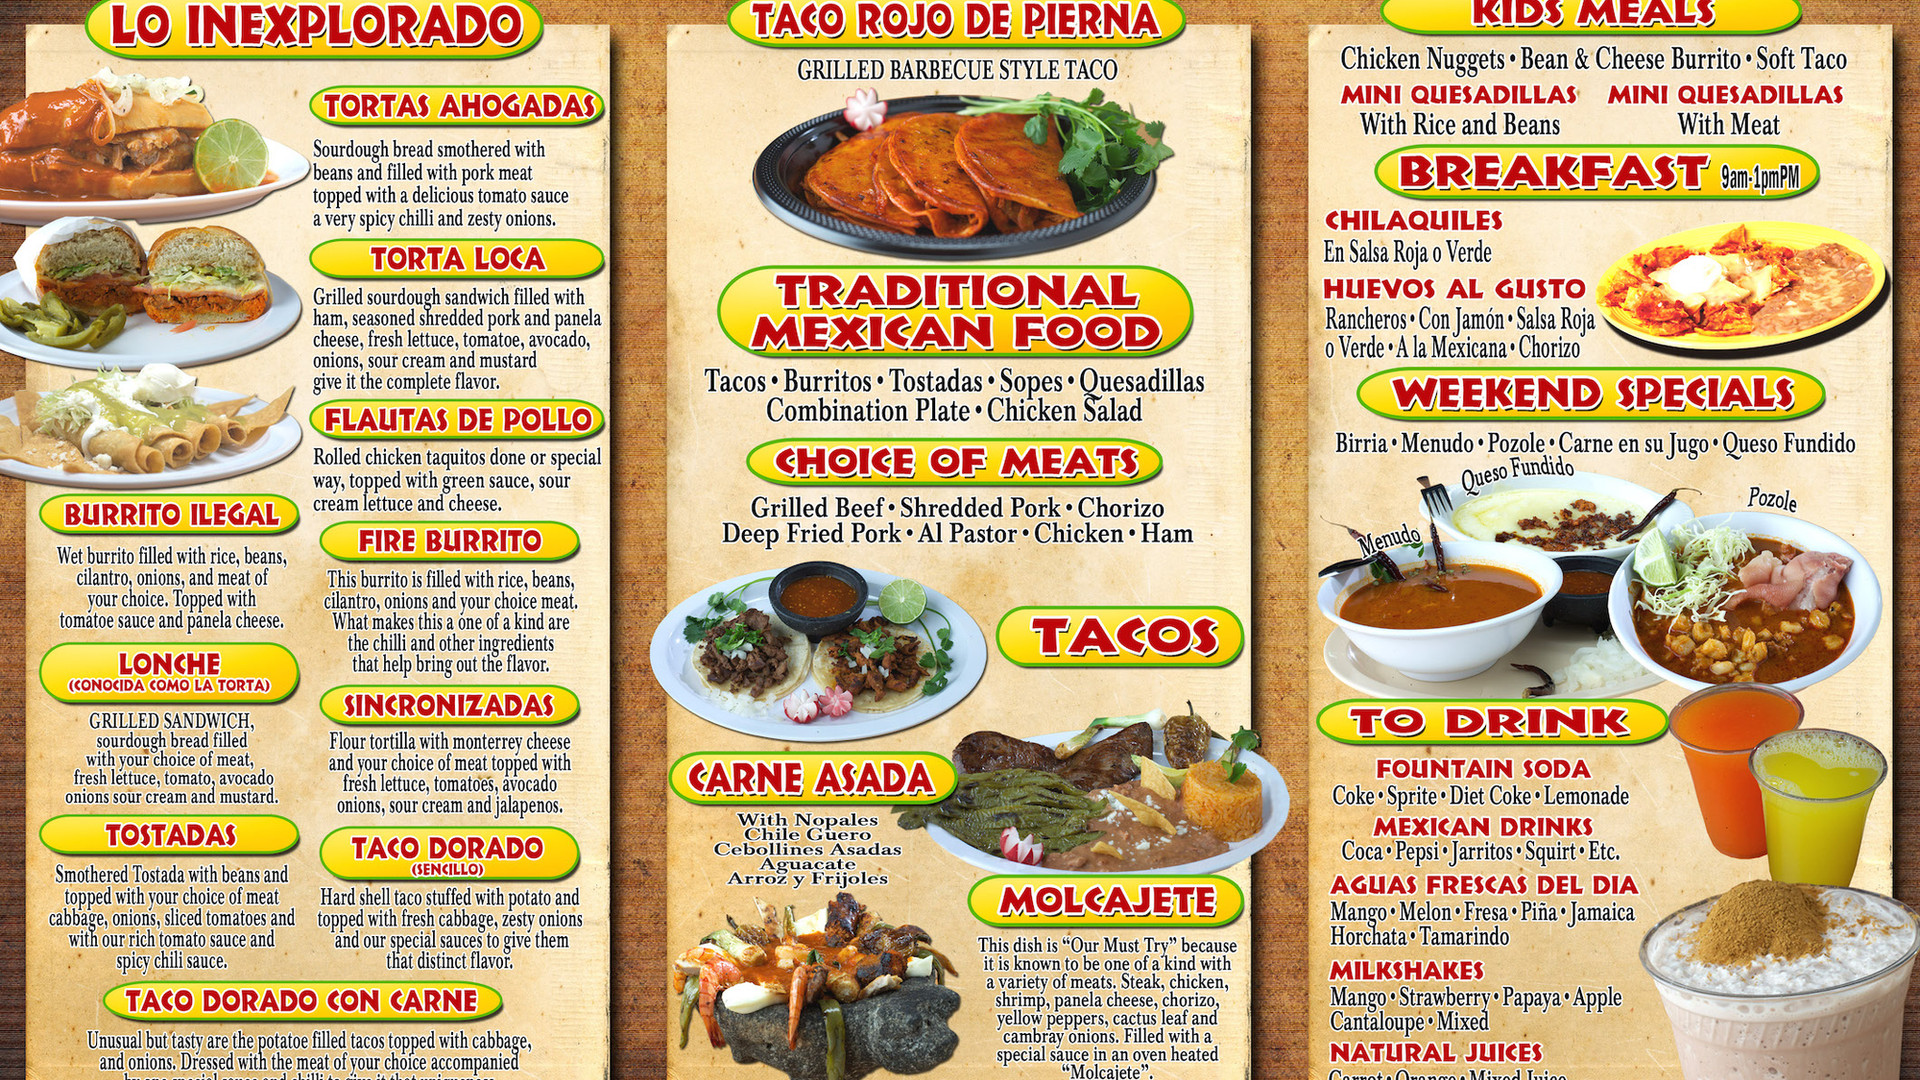 TOGO MENU BACK LAUREL 2017.jpg